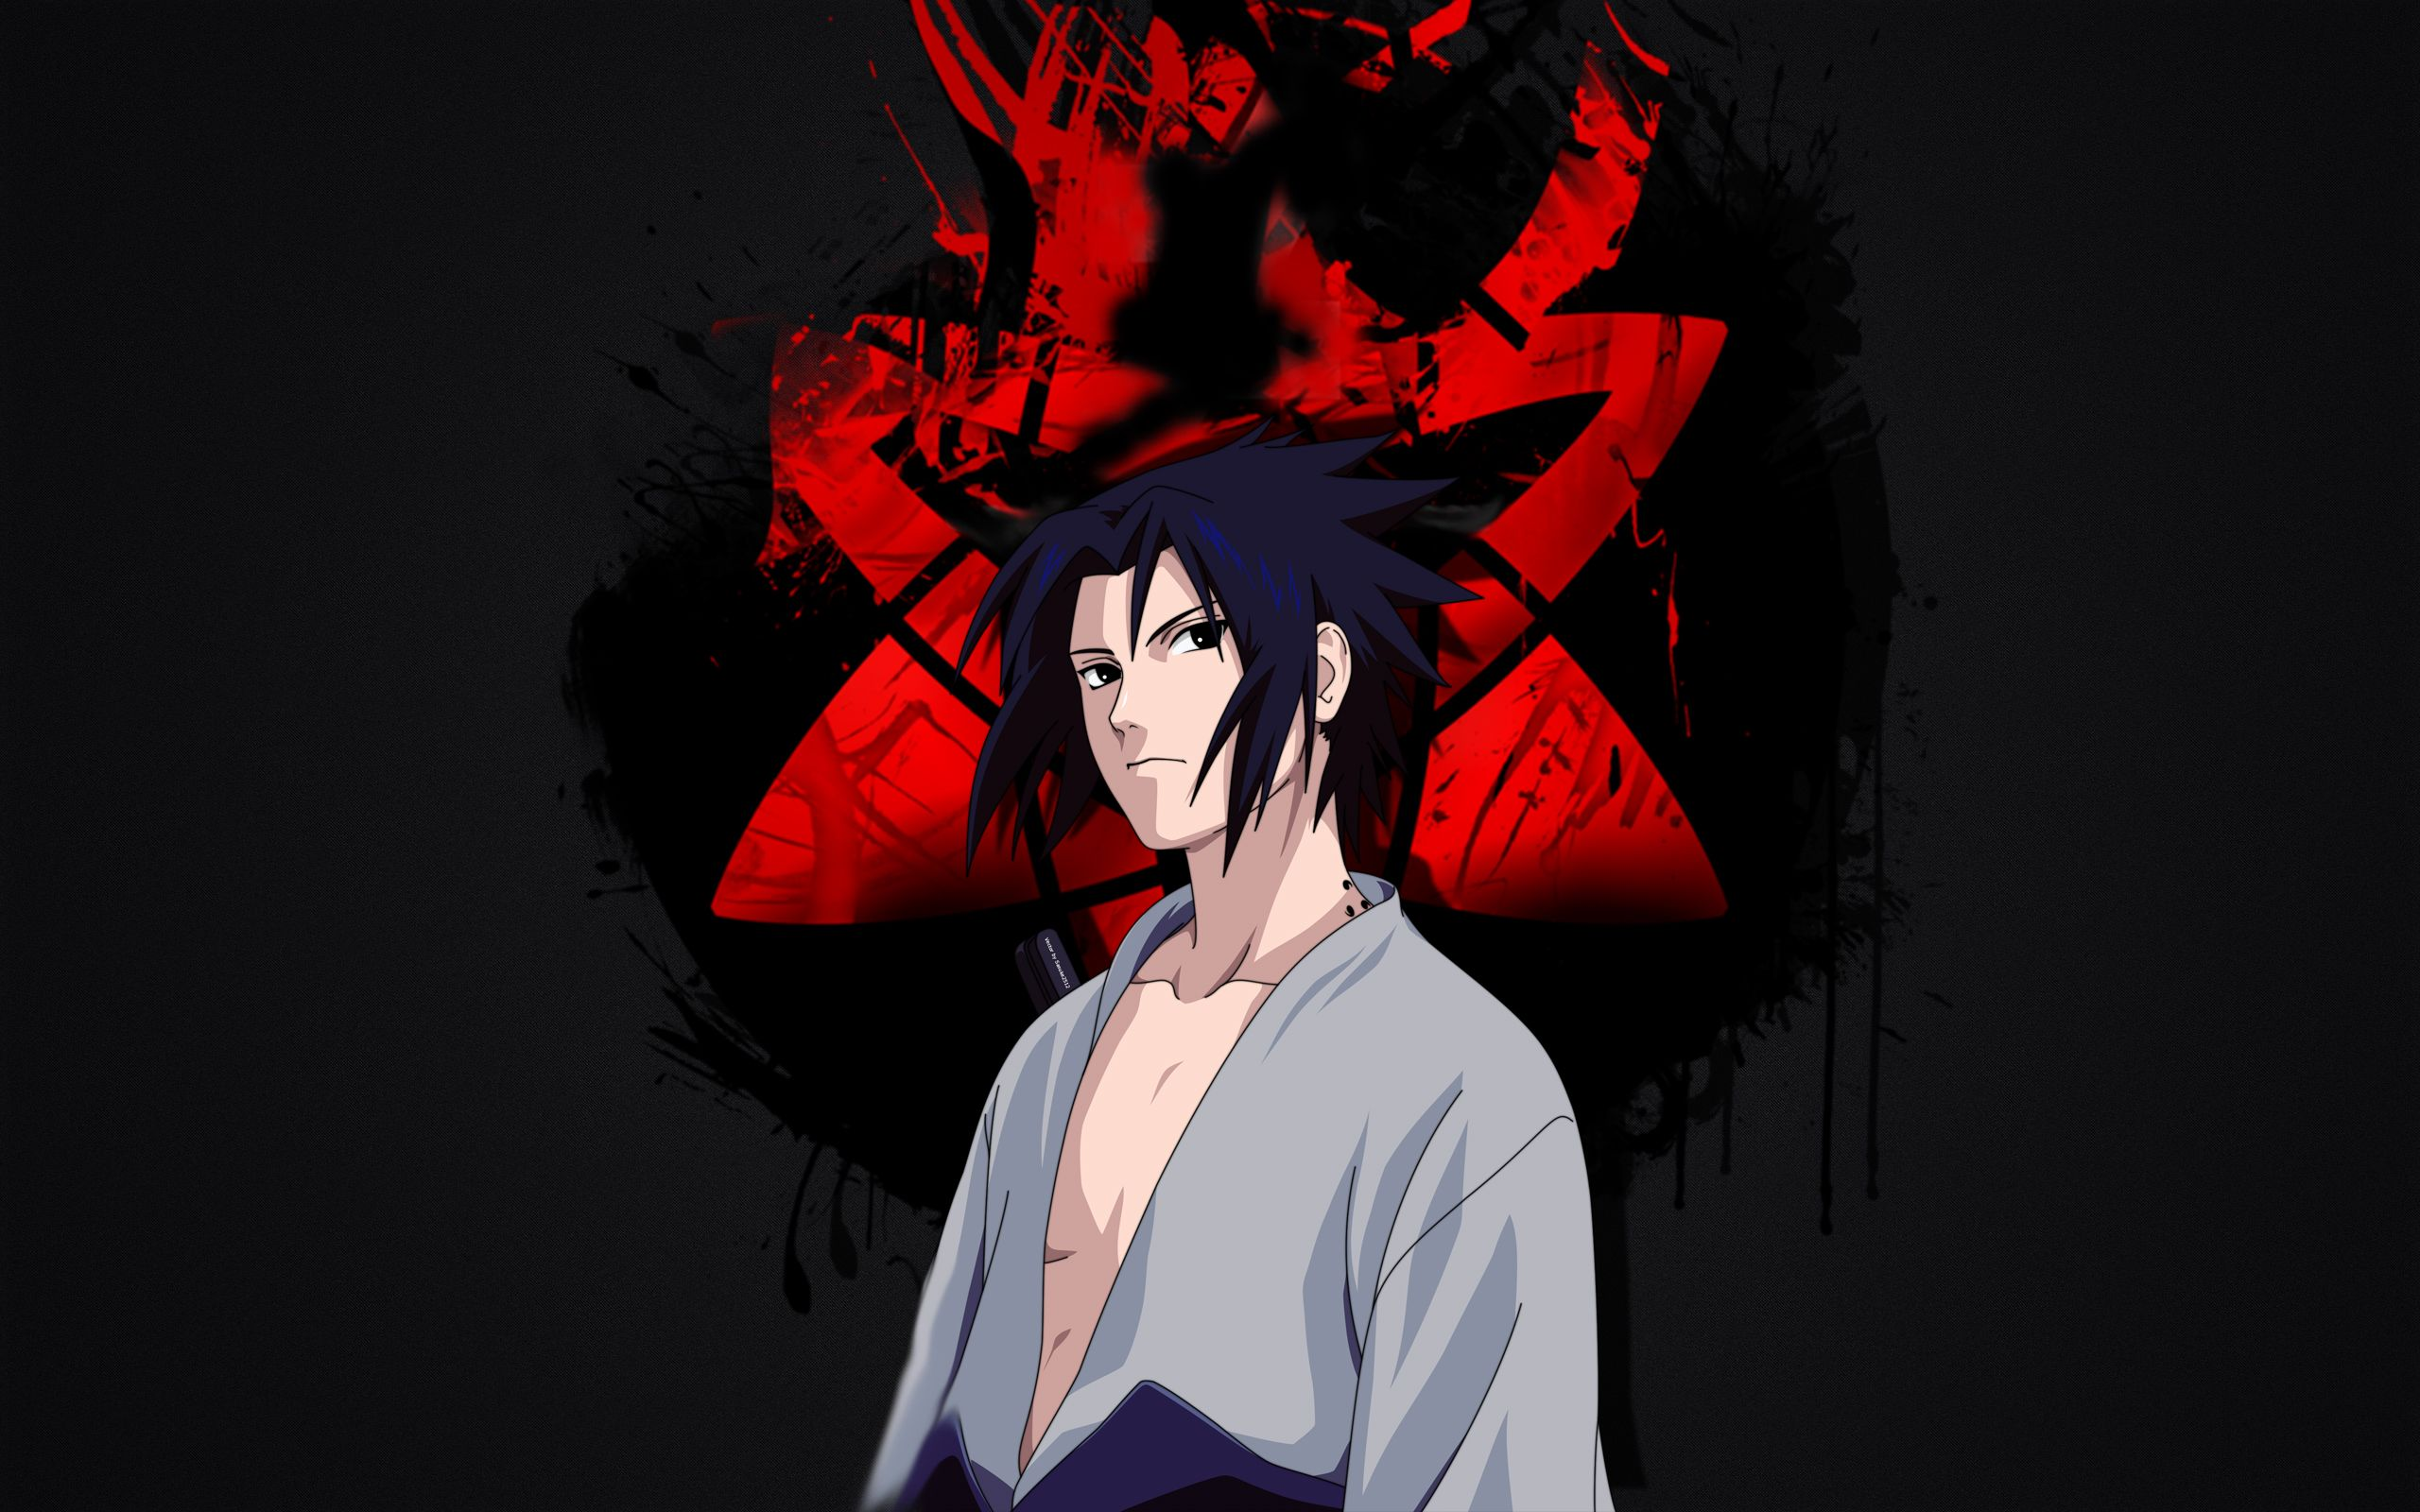 Pin On Sasuke Uchiha